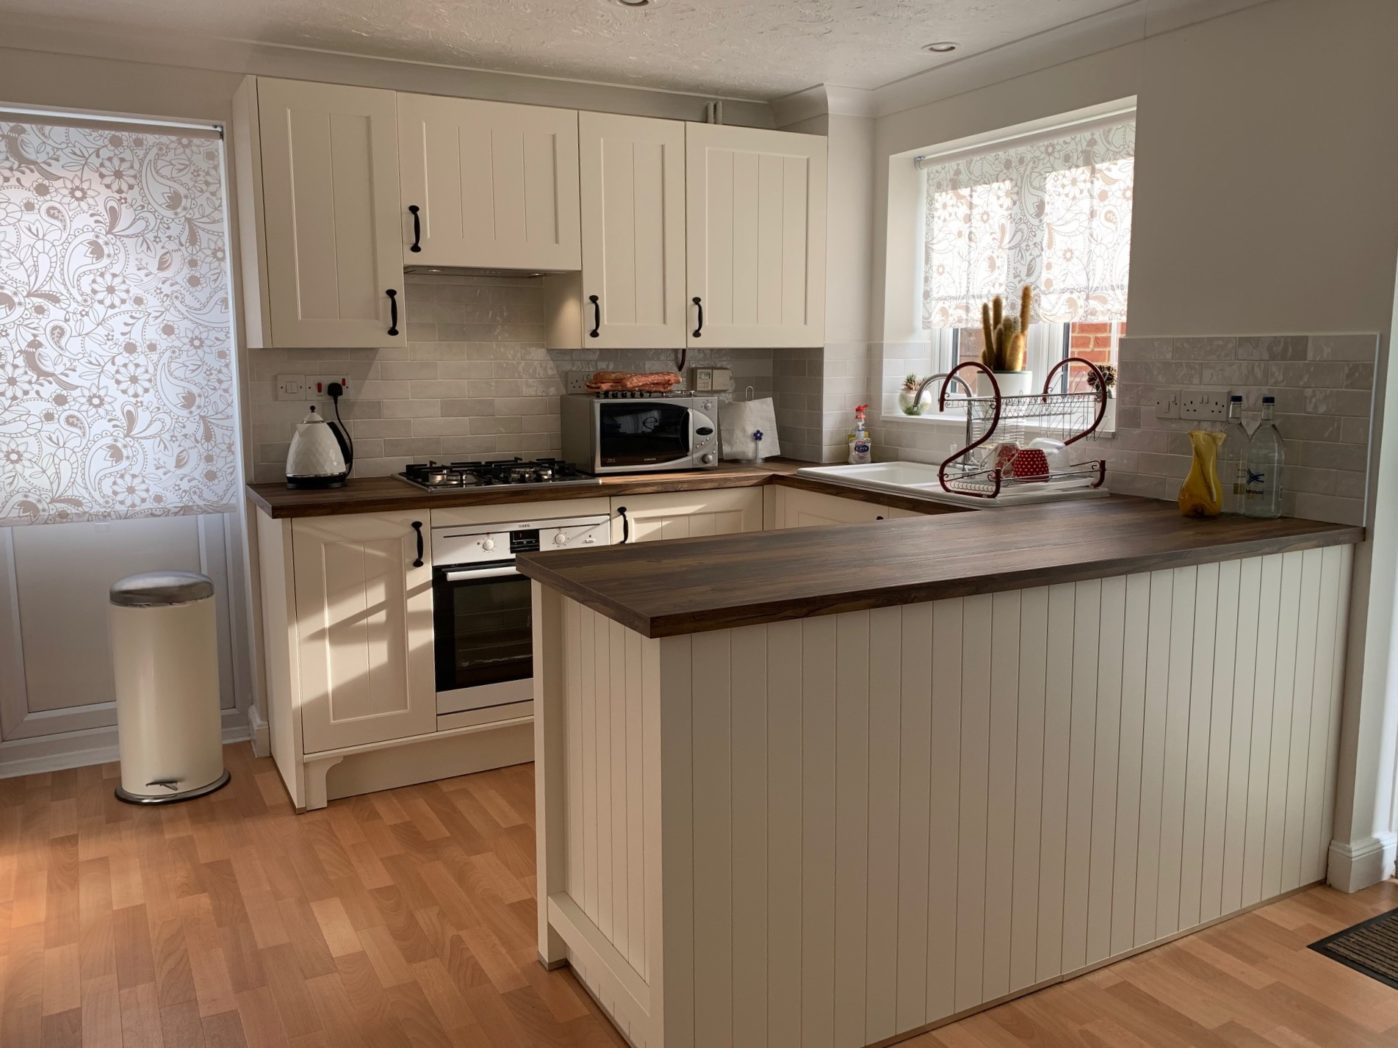 Affordable Kitchen: Small Kitchen Ideas: Small Kitchen Storage Solutions & Tips when Designing your Affordable Dream Kitchen.